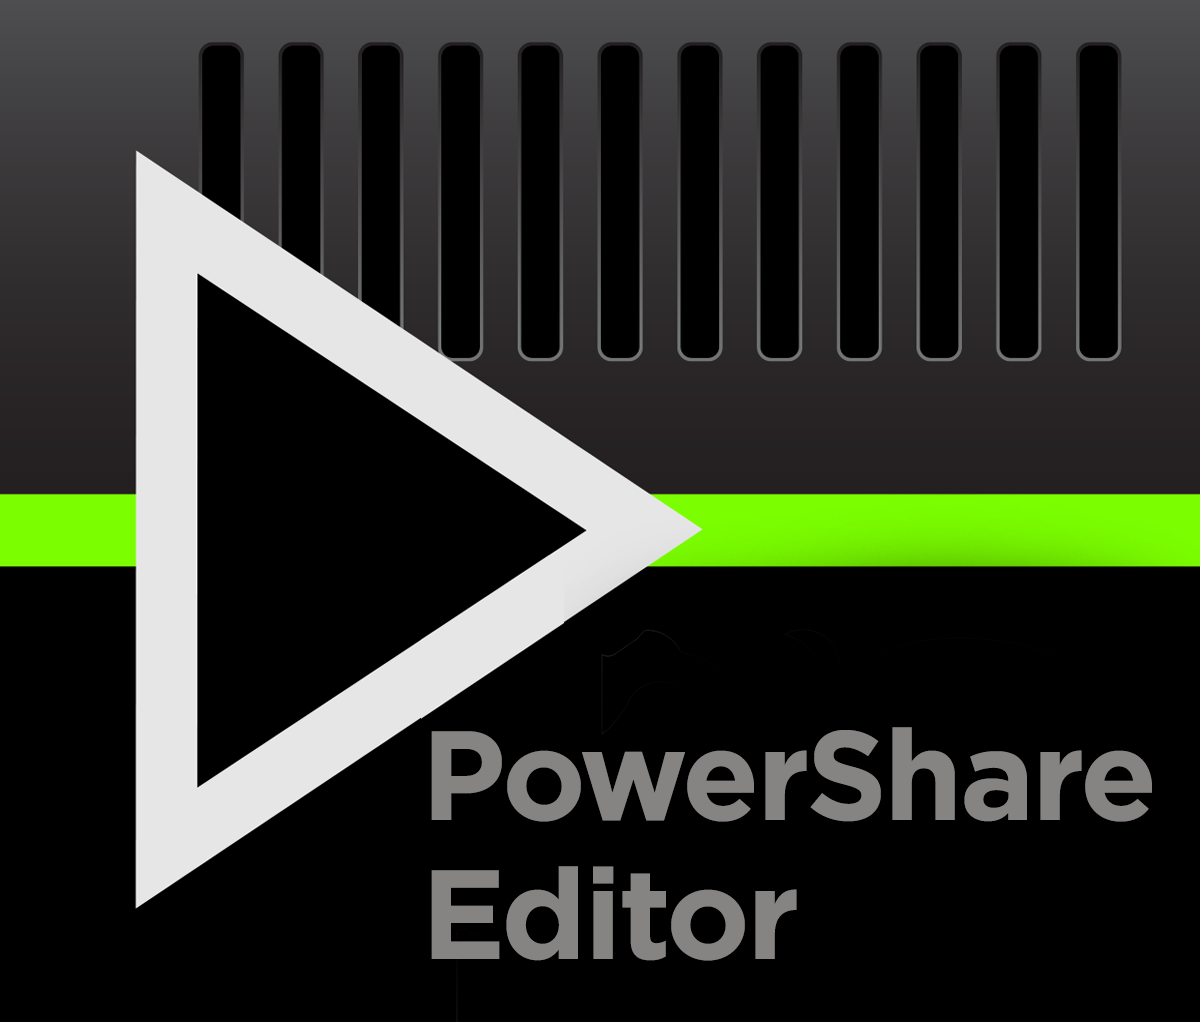 PowerShare Editor software